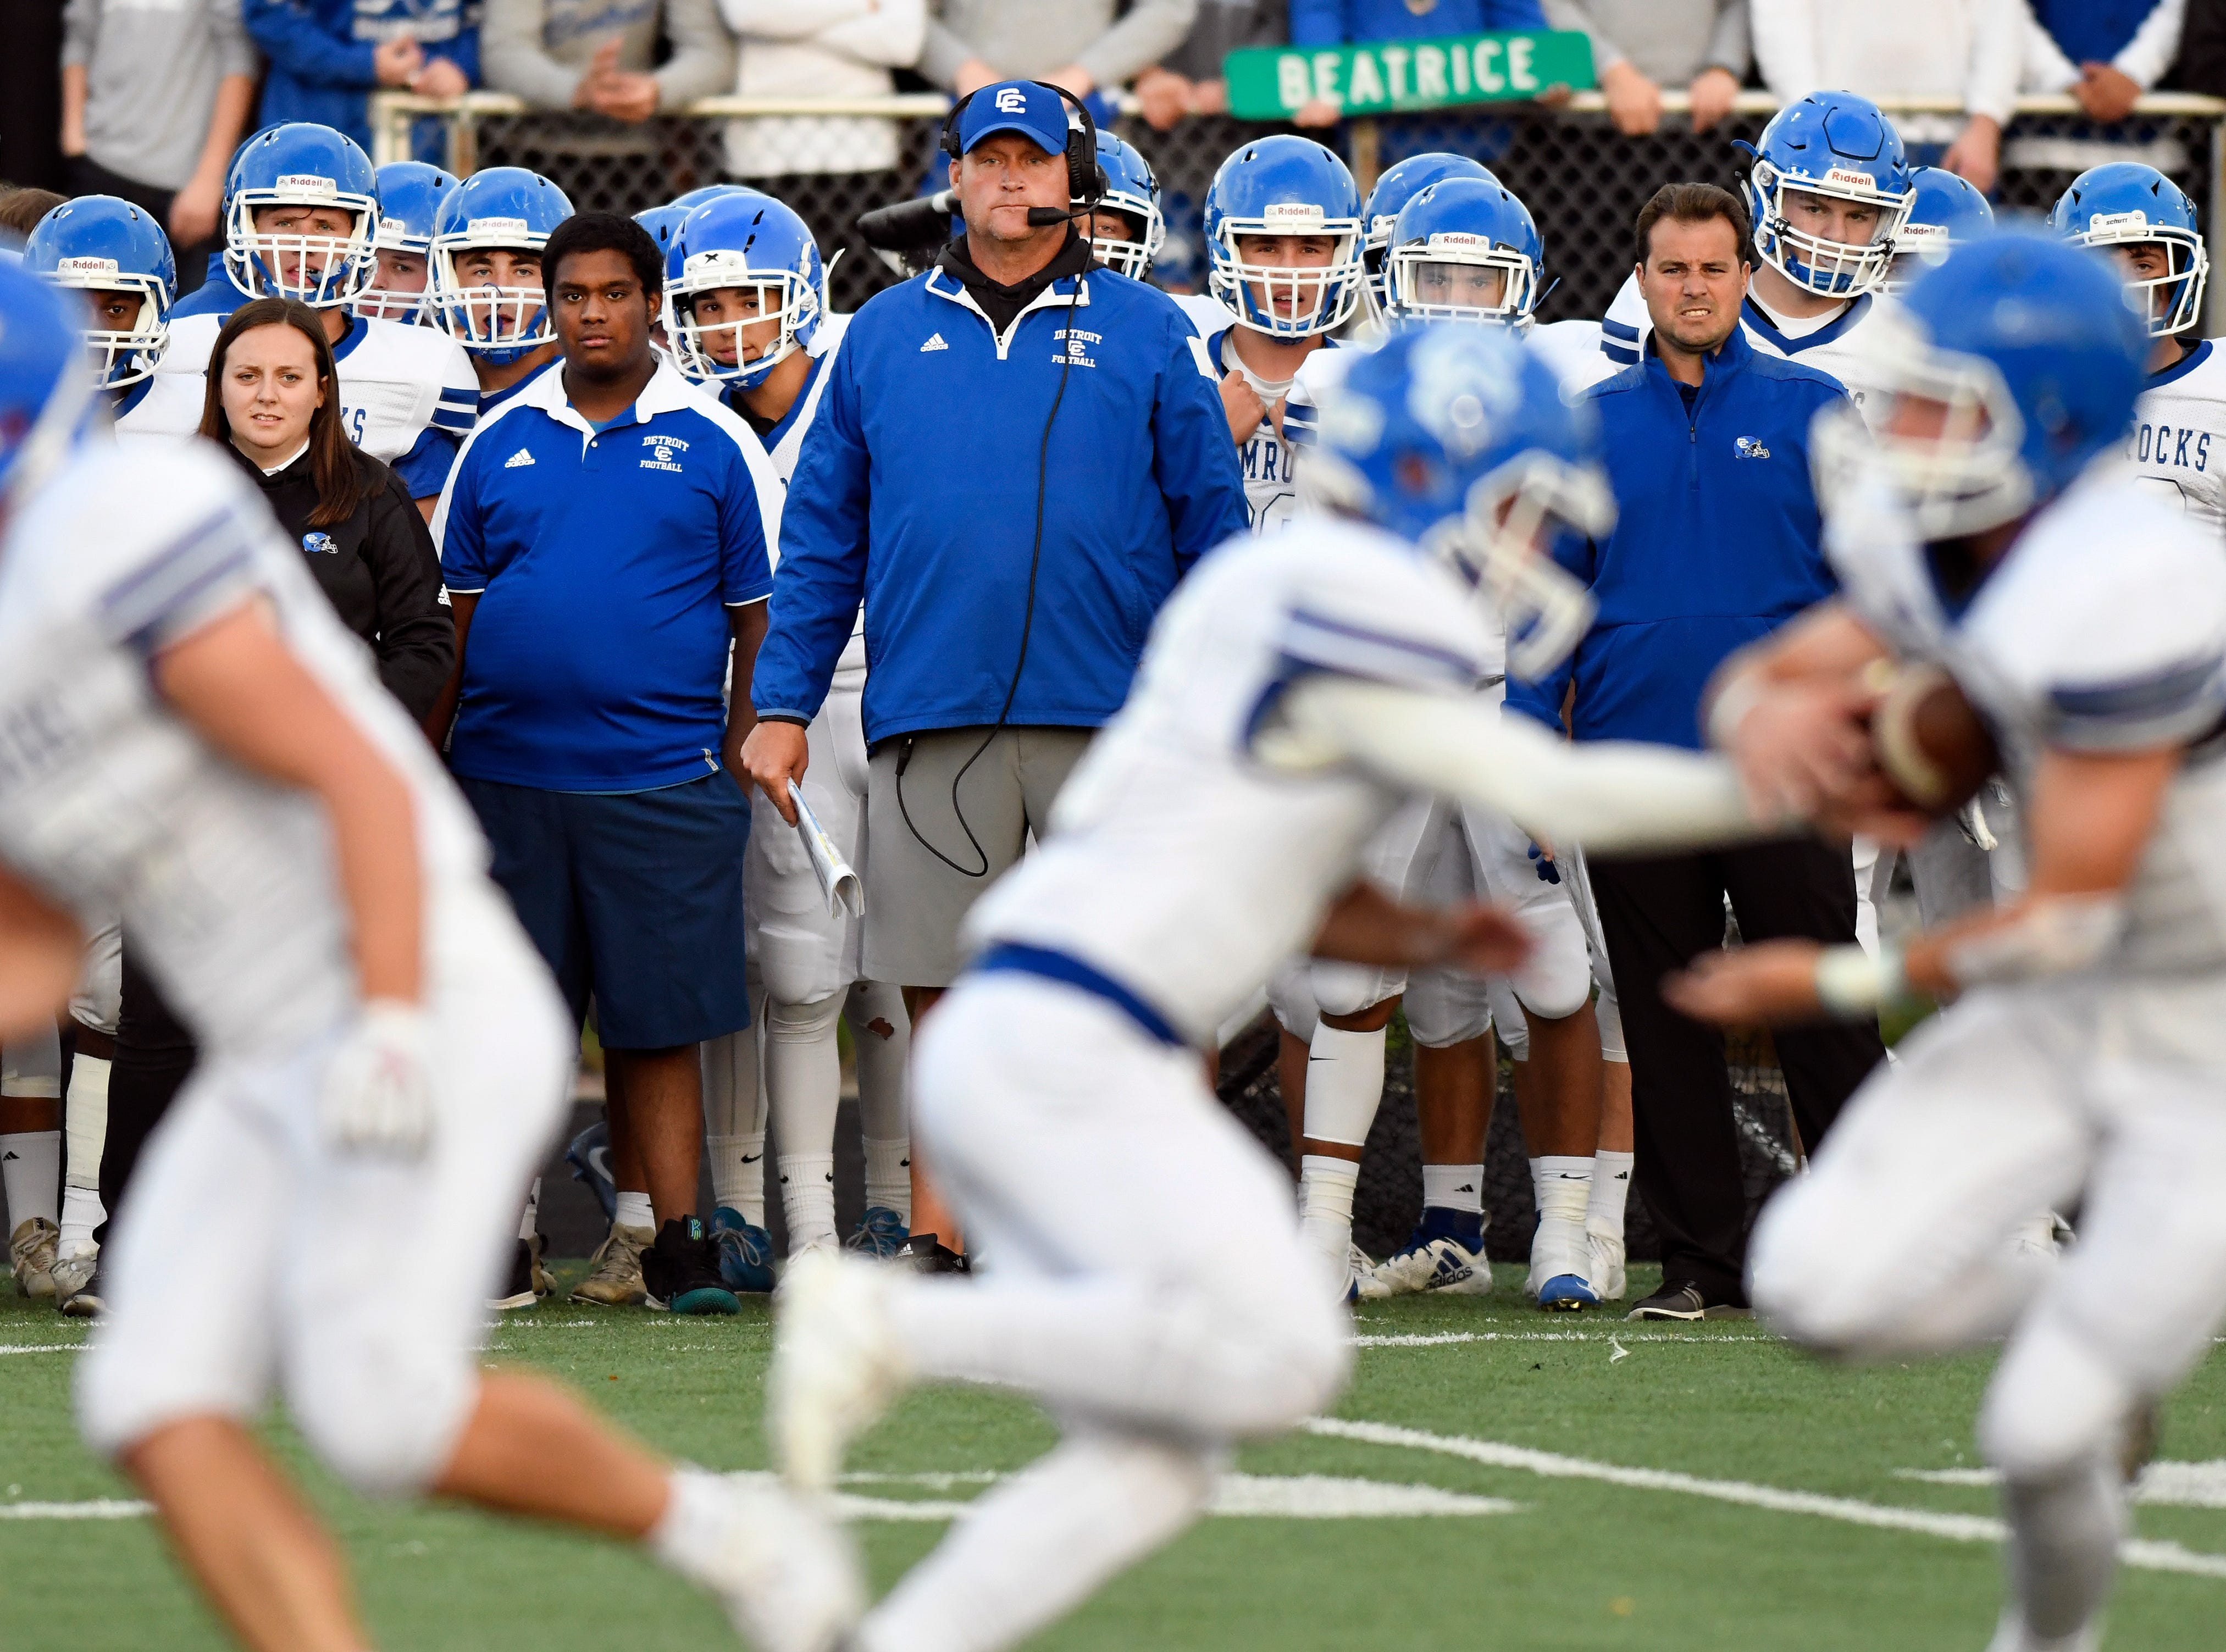 Detroit Catholic Central football head coach Dan Anderson, middle, watches his team play against Birmingham Brother Rice in the first quarter, Saturday, Sept. 22, 2018 at Hurley Field in Berkley, Mich.  Catholic Central defeated Brother Rice, 21-0.  (Jose Juarez/Hometown Life)